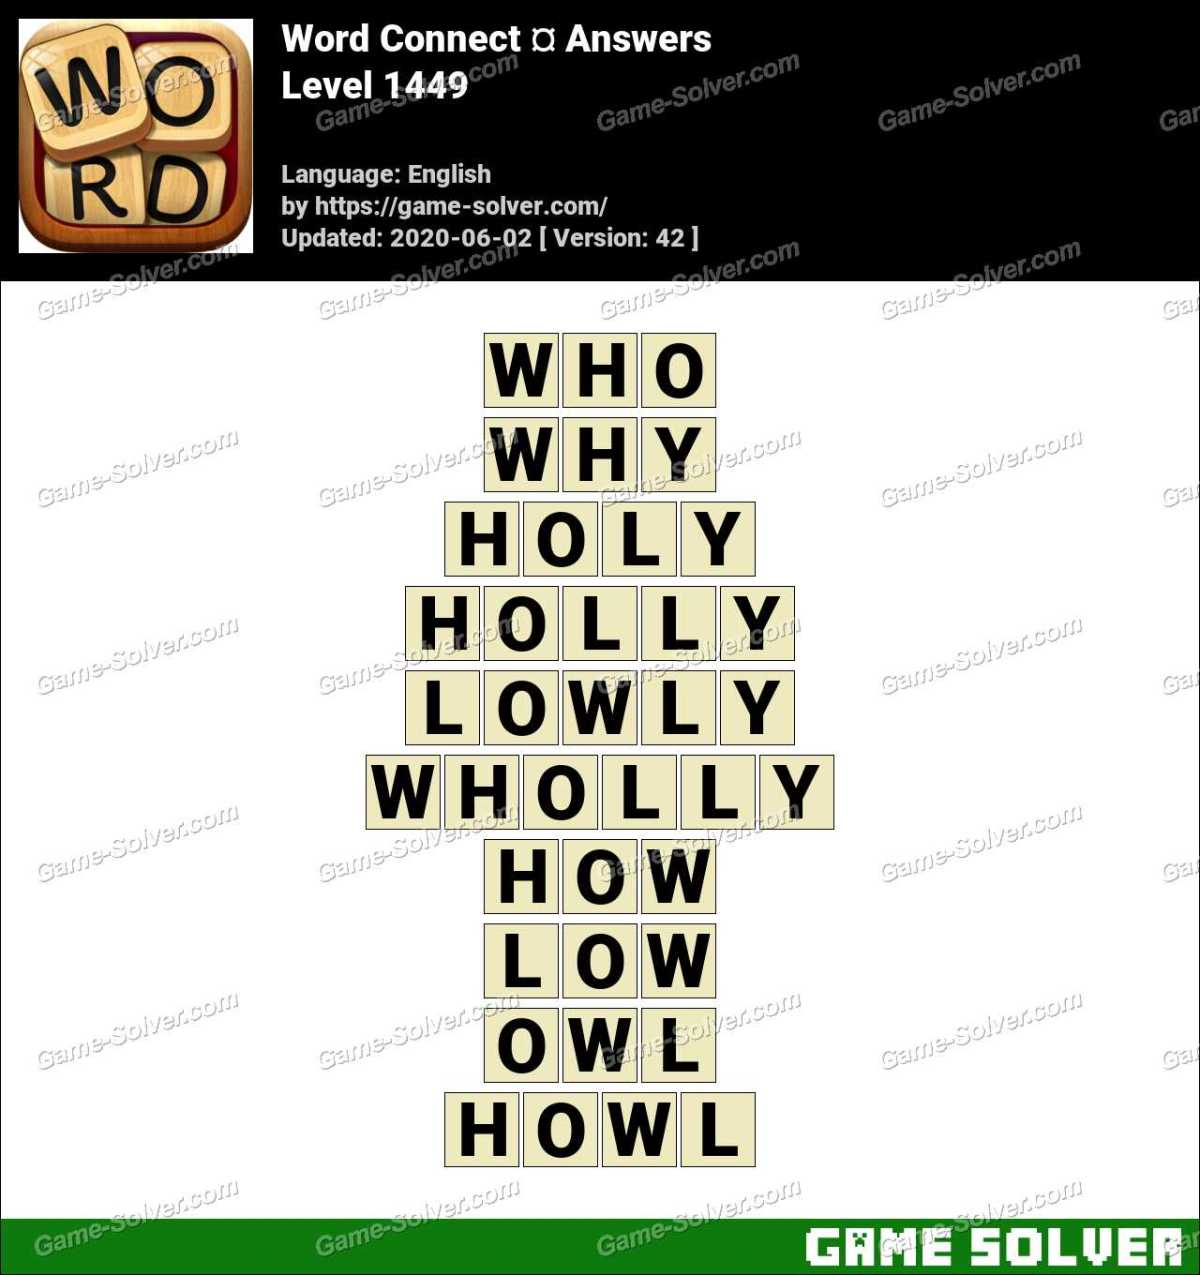 Word Connect Level 1449 Answers